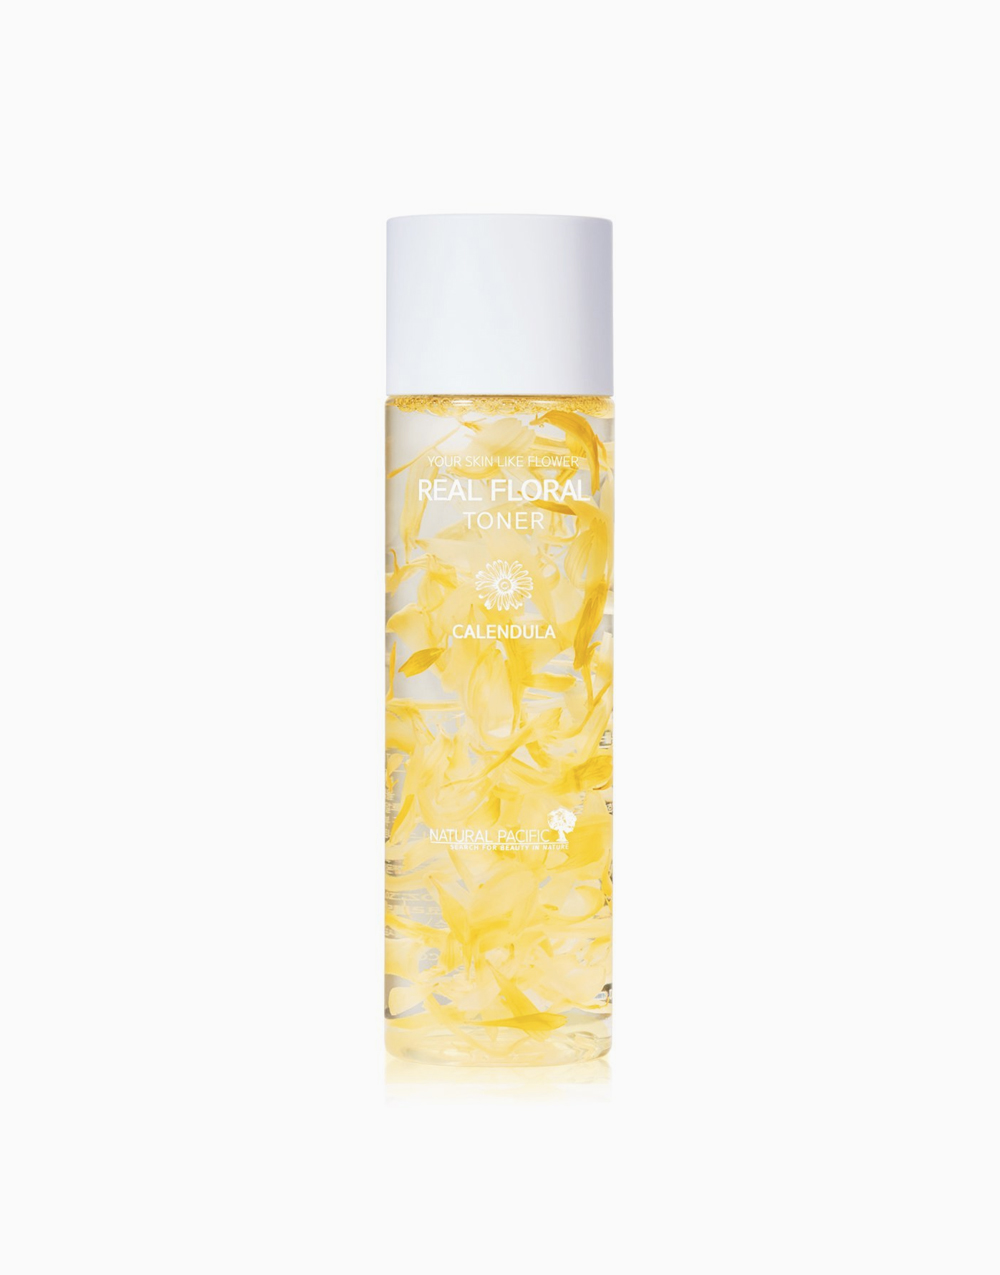 Calendula Real Floral Toner by Nacific